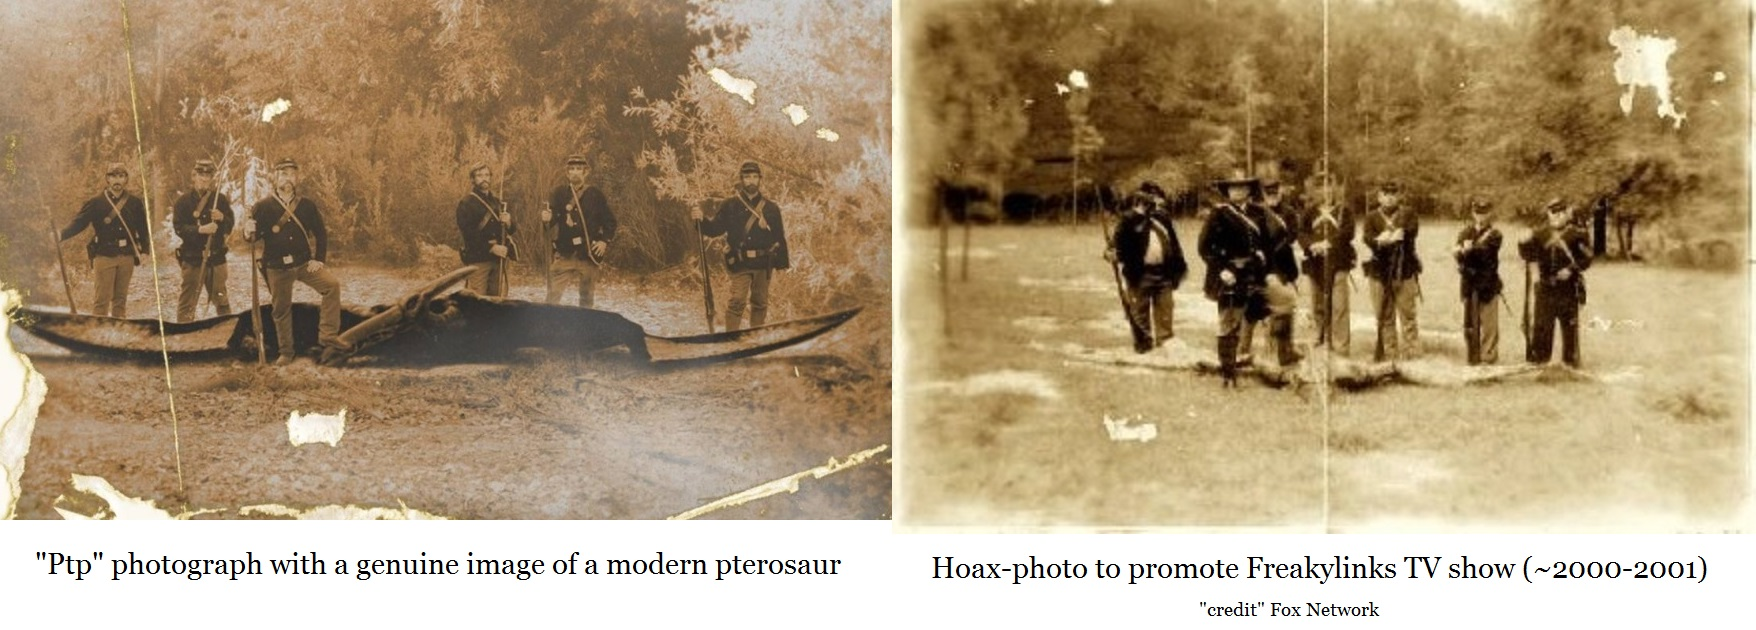 authentic photograph (left) compared with hoax photo (on right)